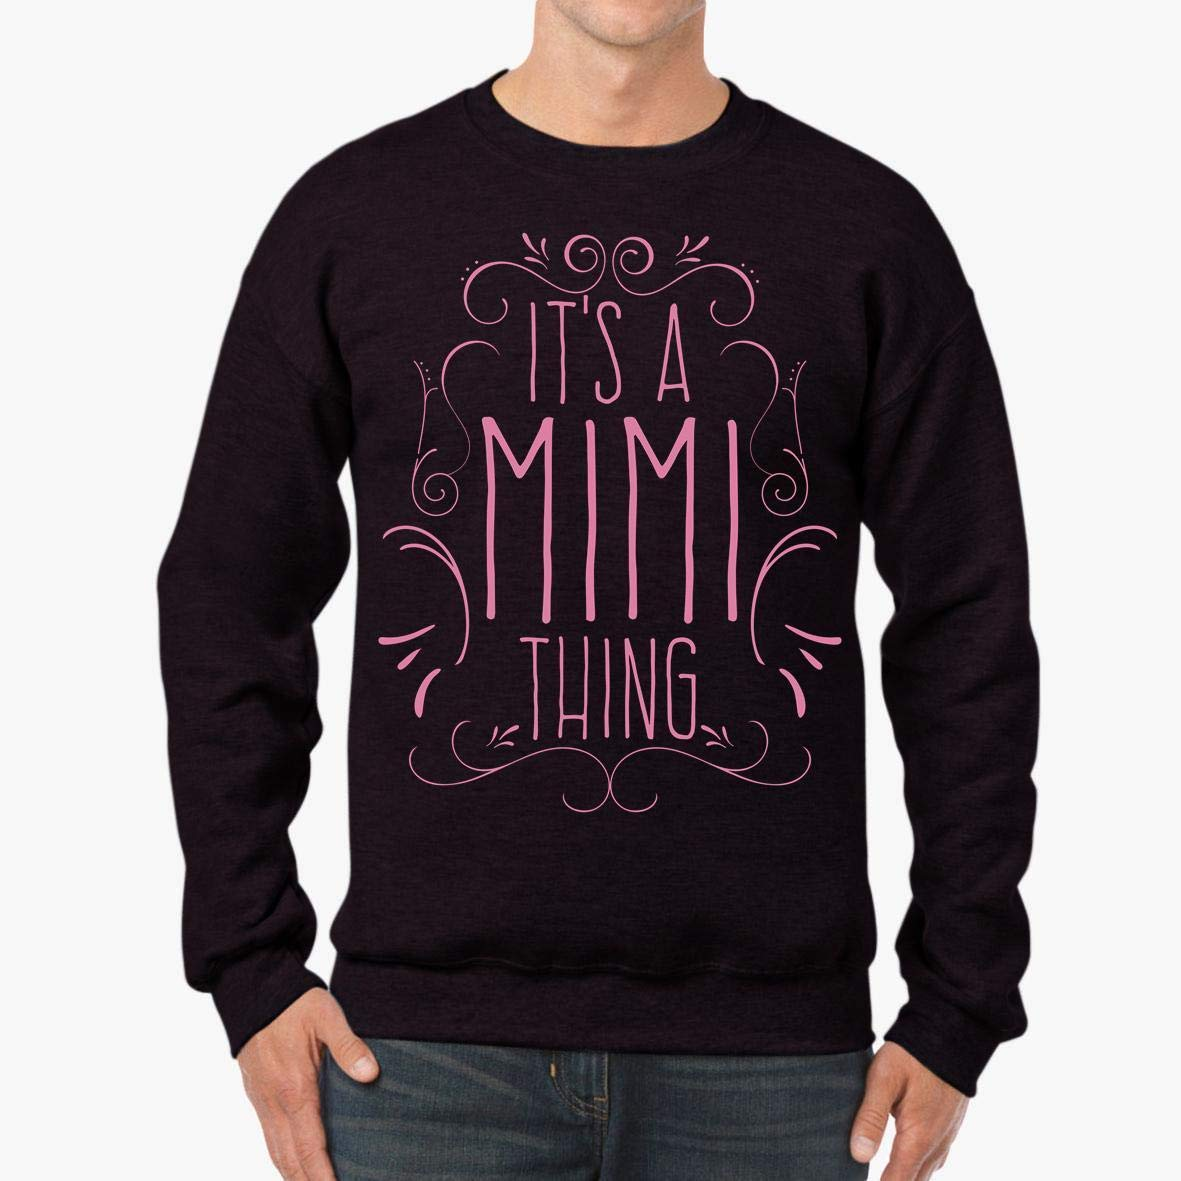 Mother/_s Day Adore Granny Grandma Women/_s Unisex Sweatshirt It/_s A Mimi Thing tee